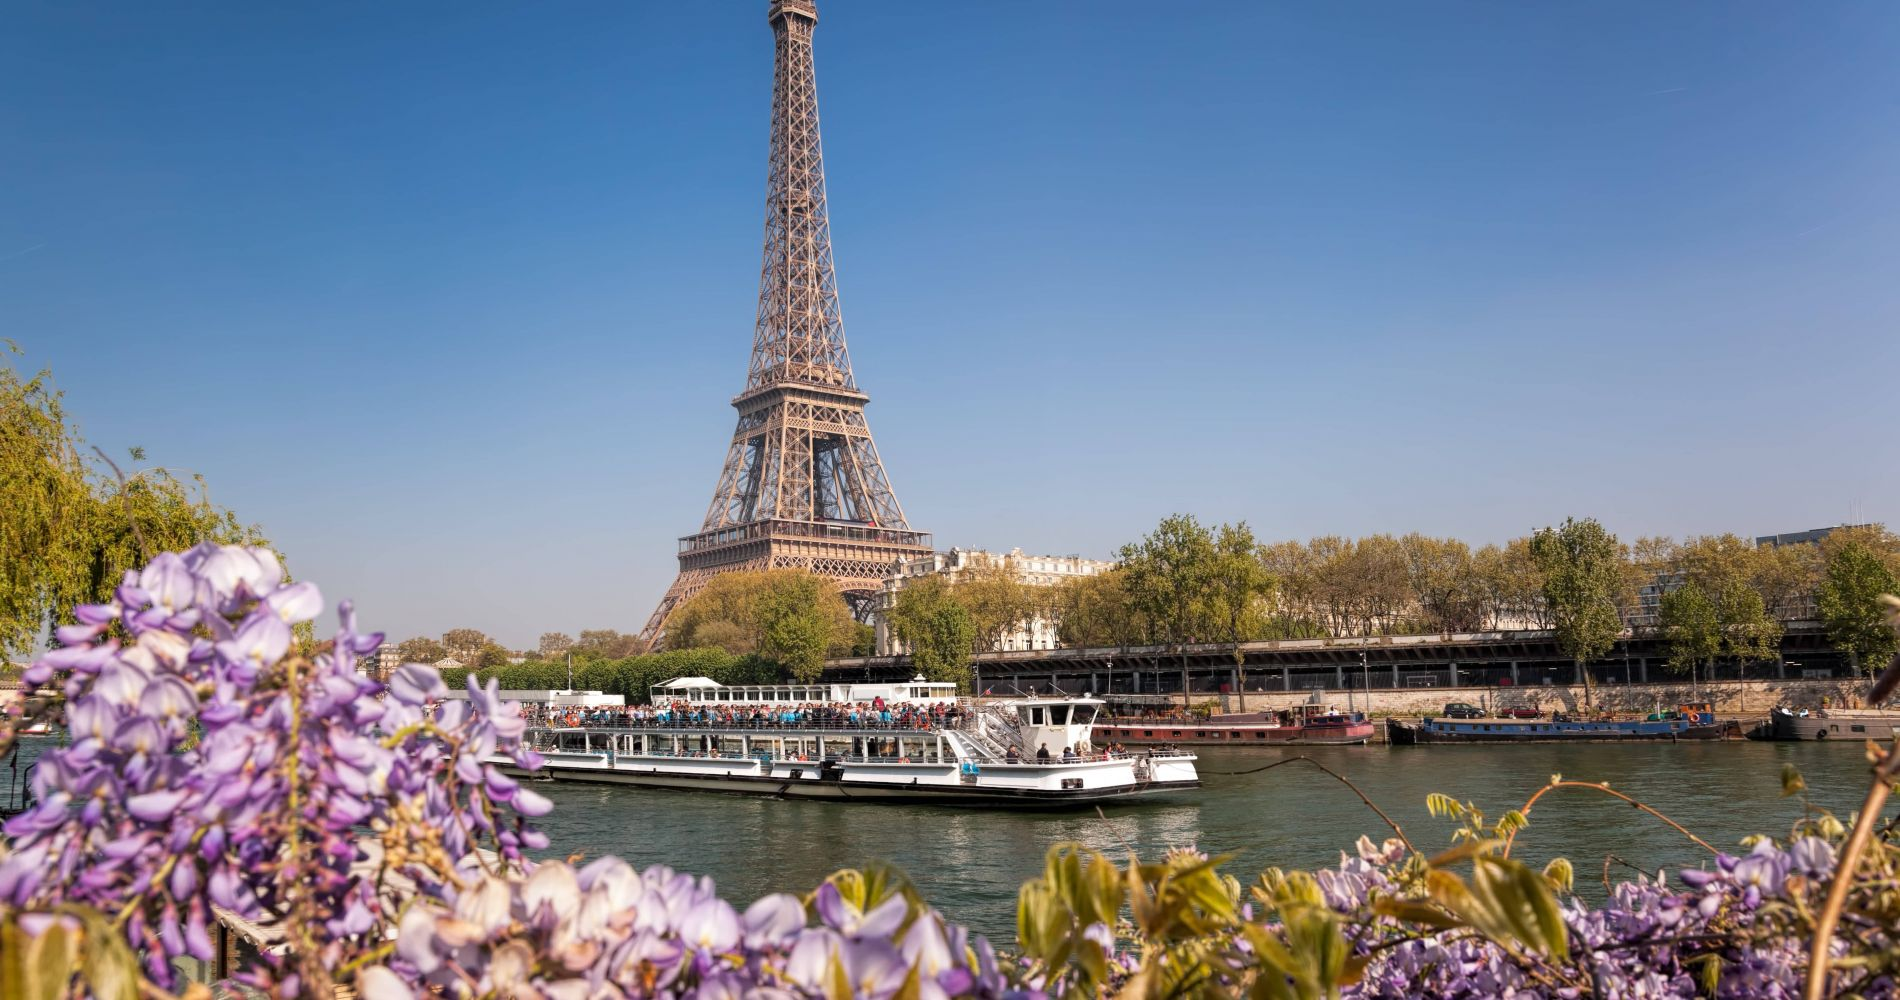 Bateaux Parisiens - Seine River Cruise and other attractions in Paris